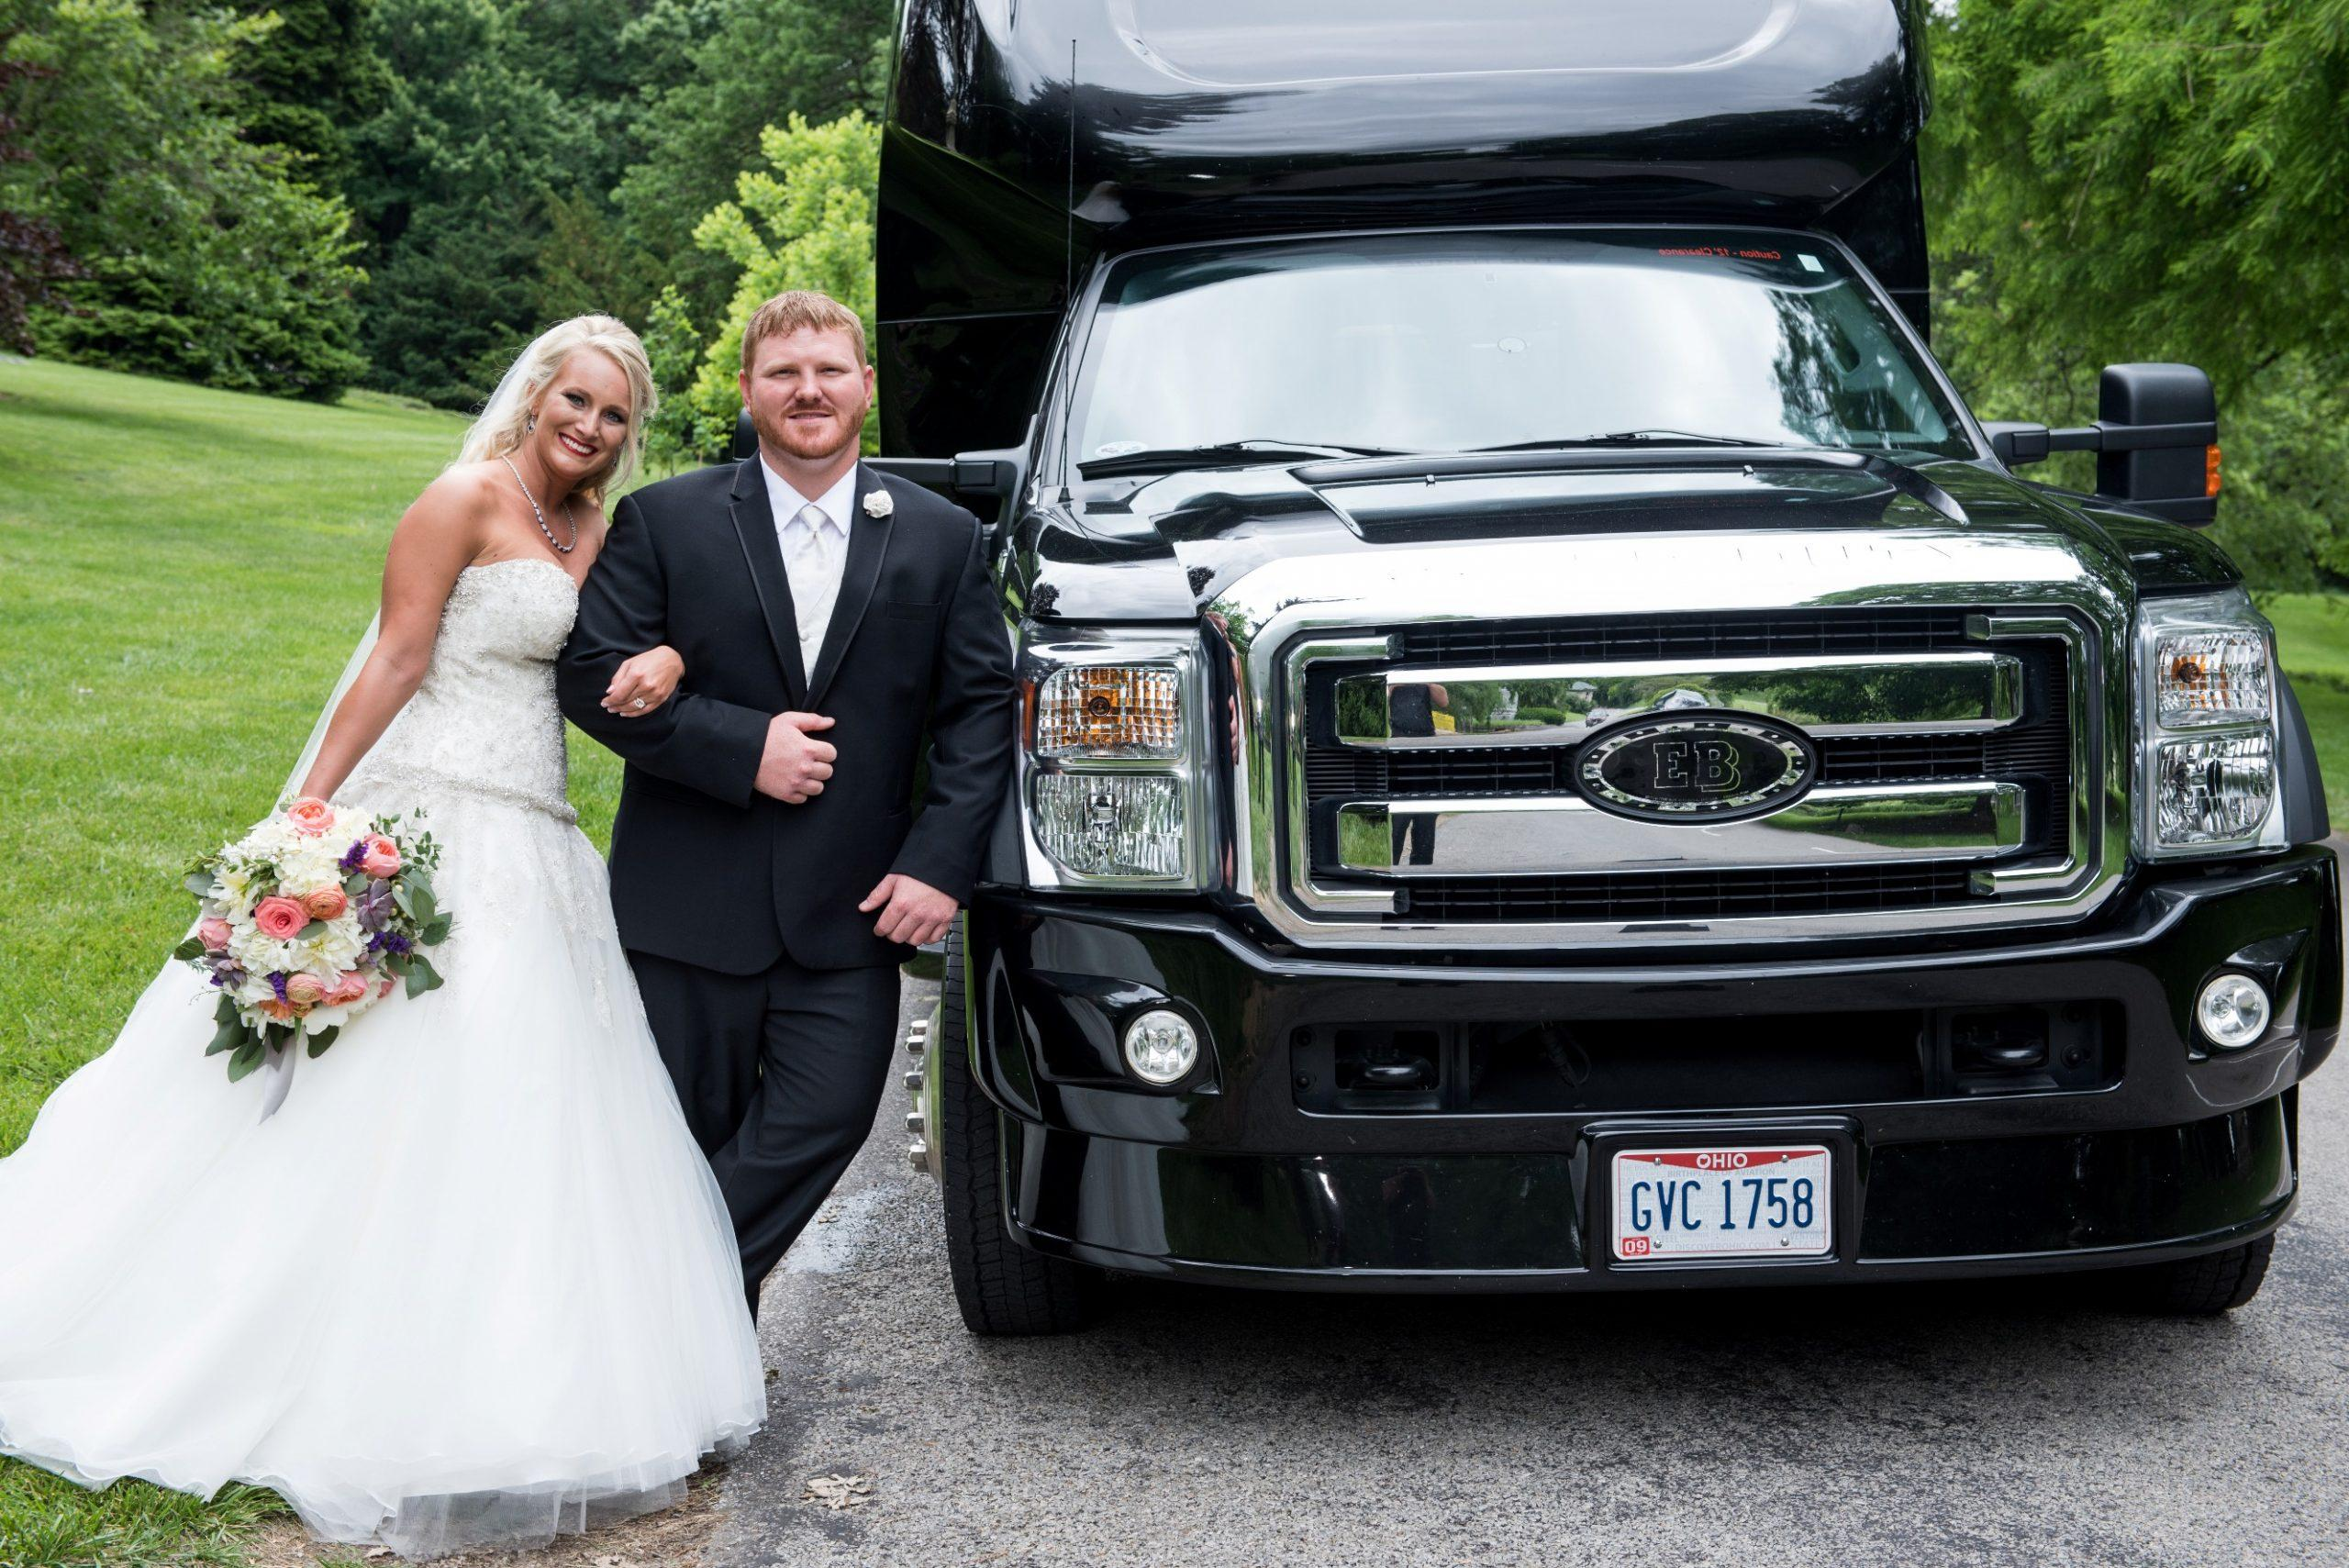 Wedding Motortoys Limo Party Bus Cincinnati